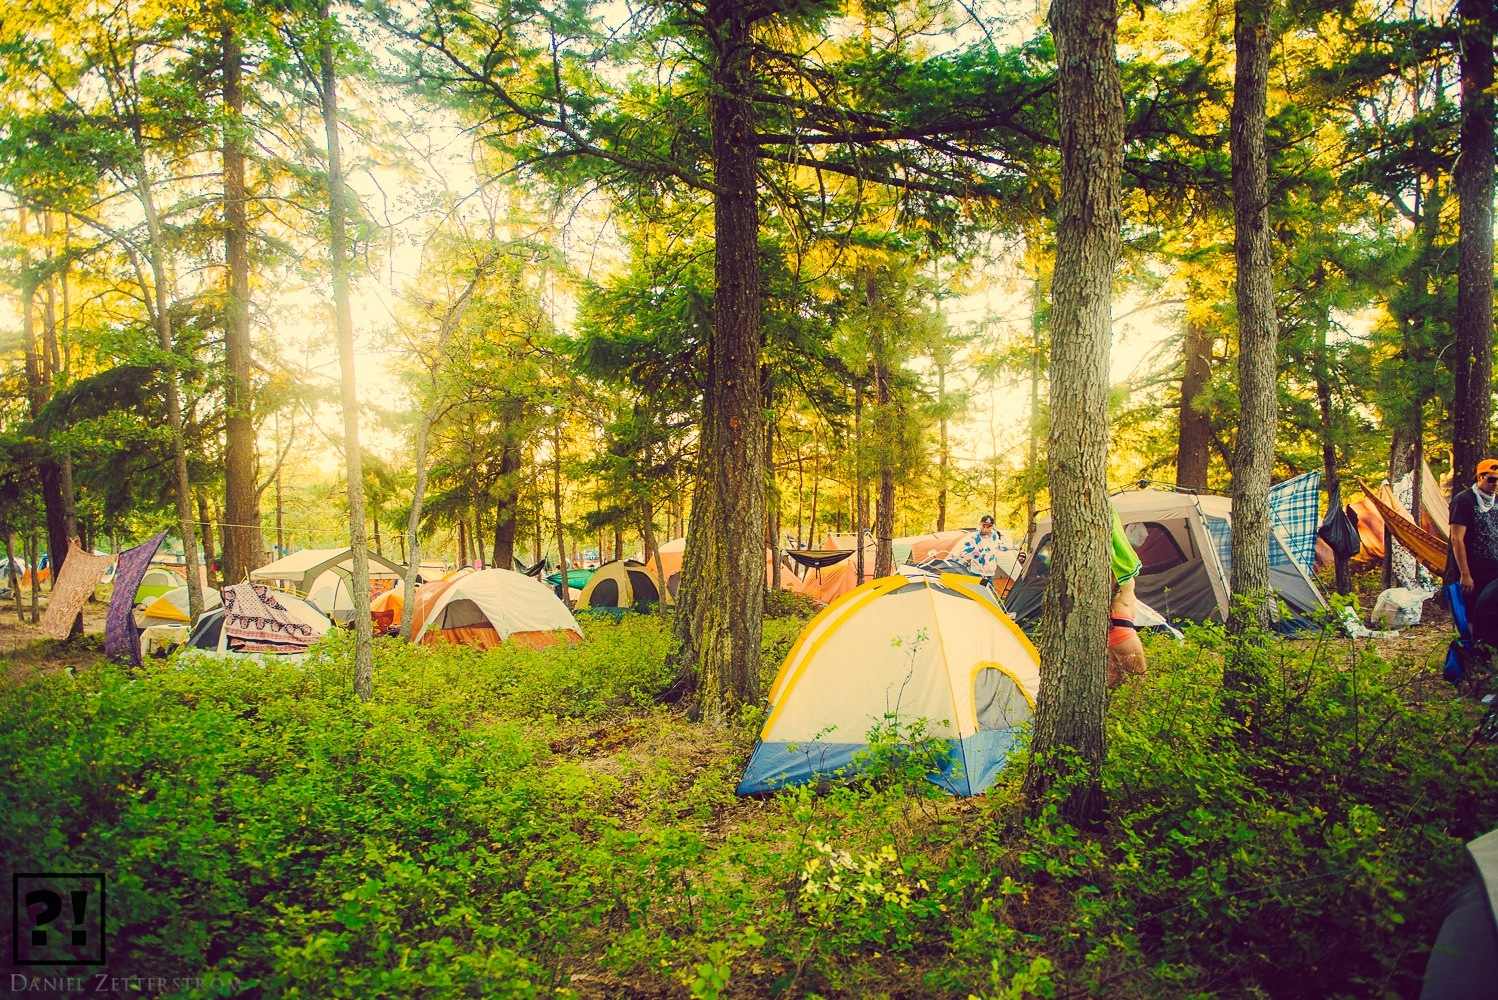 How to Pack Light for a Camping Festival When Flying